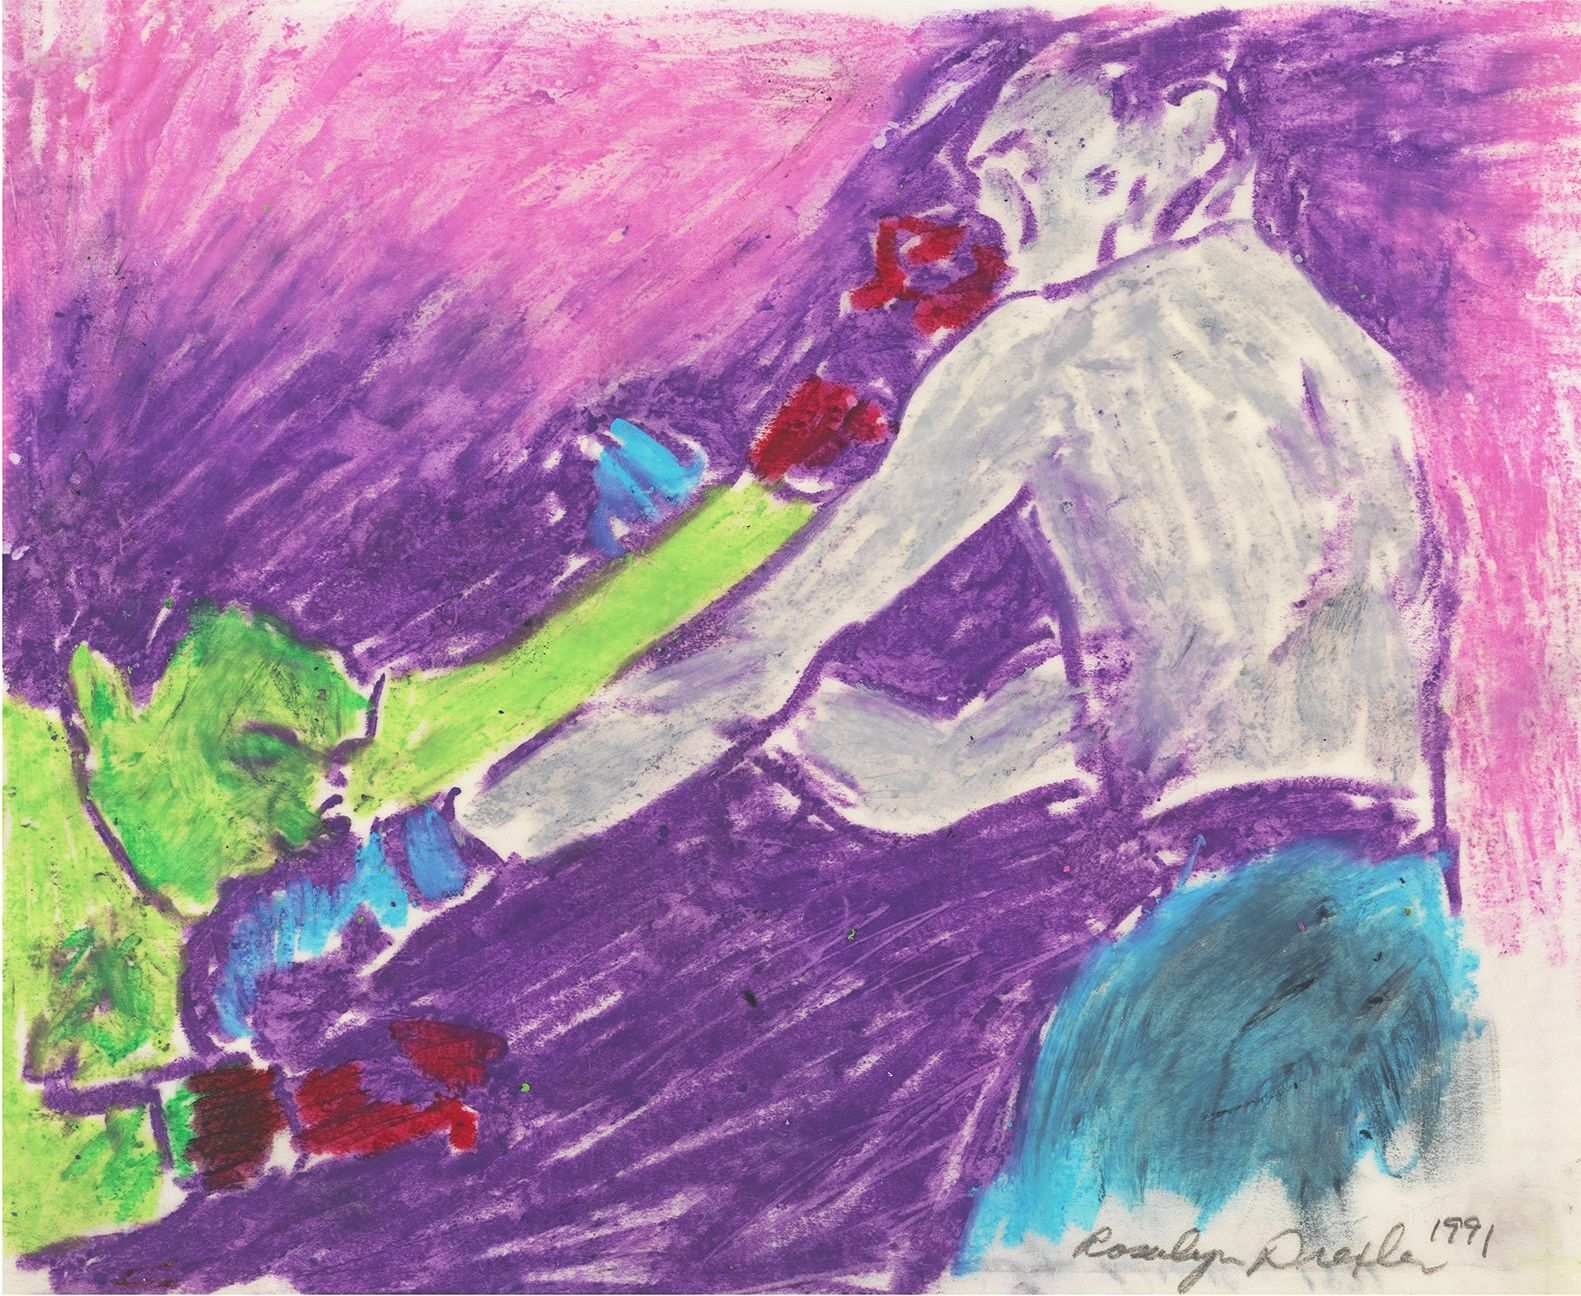 Pastel drawing of green colored boxing figure punching another figure in the face